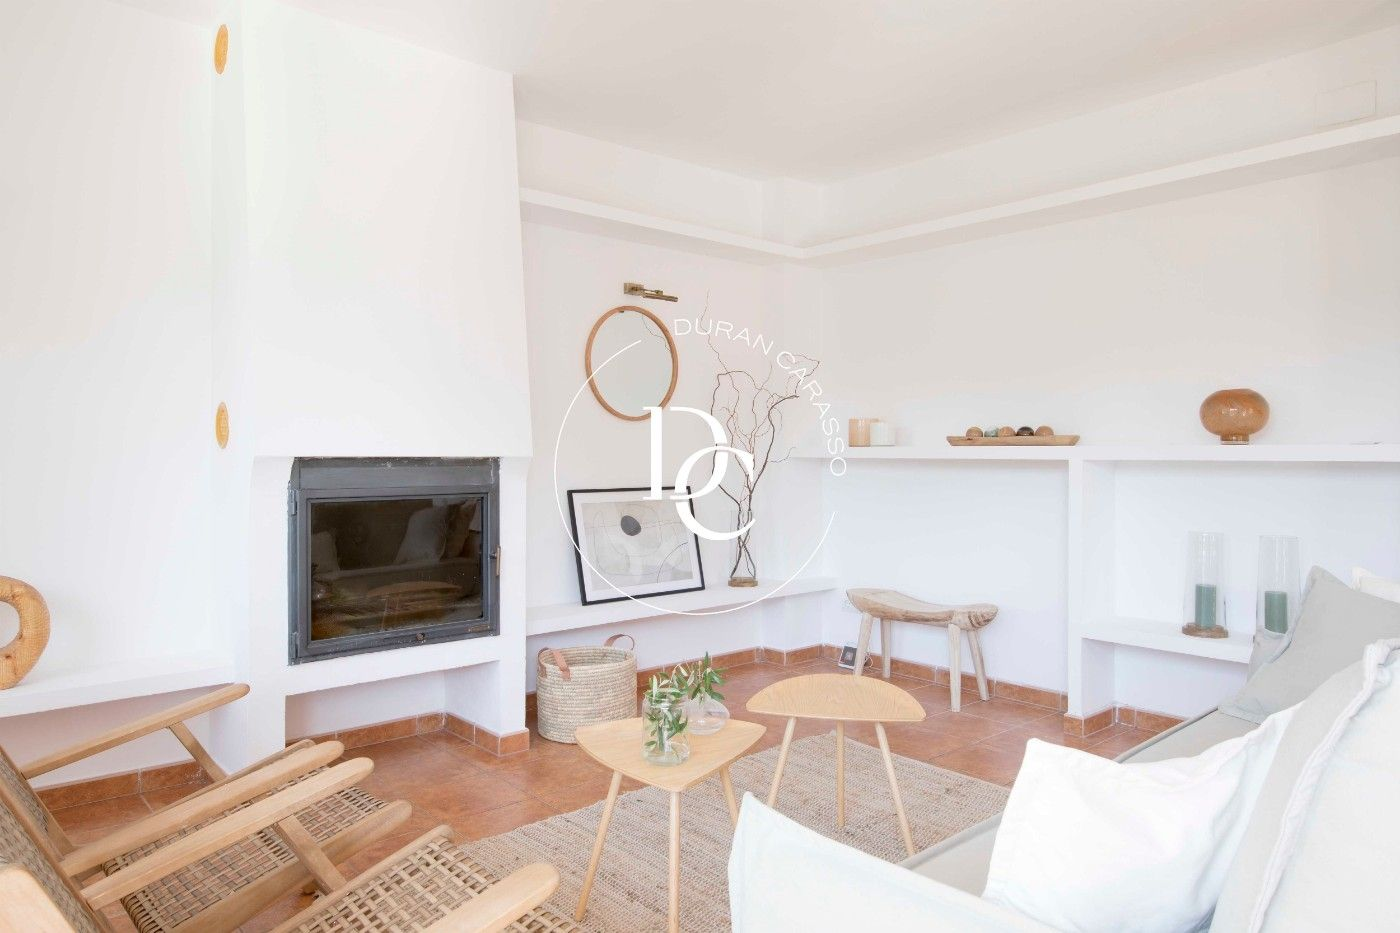 Flat in Carrer anselm clave, 14. Piso vinyet 3 dormitorios y pisc